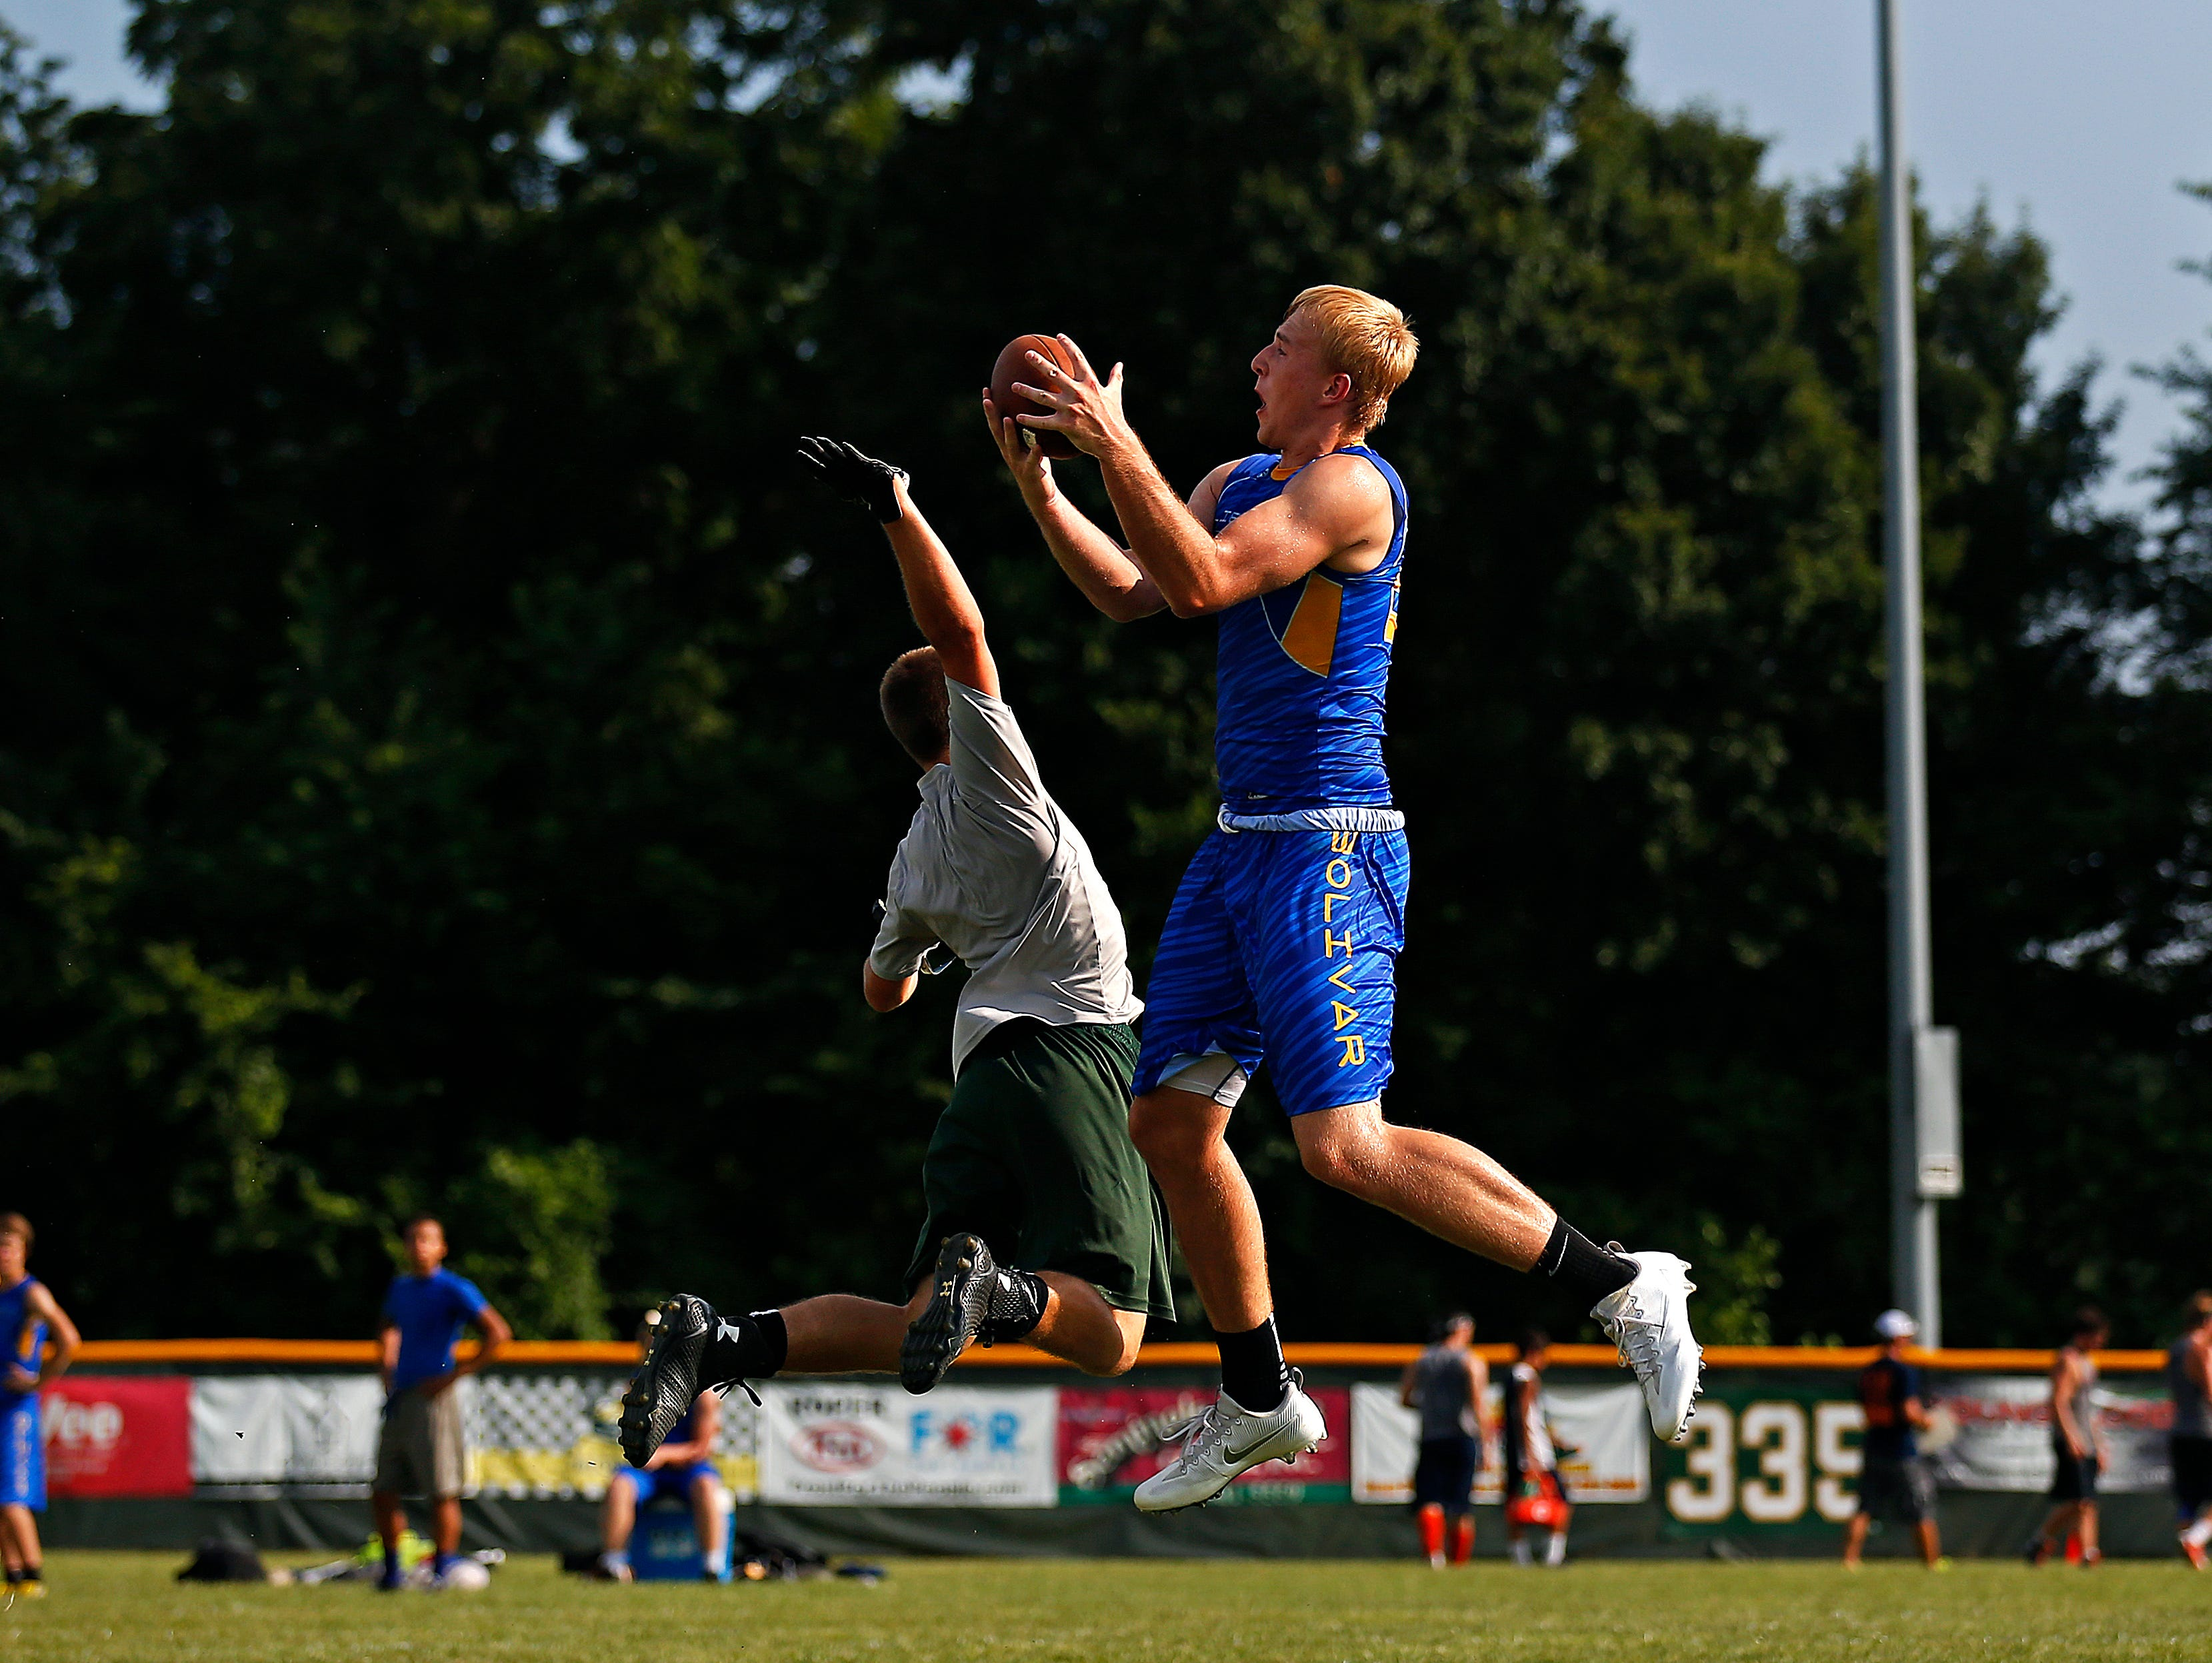 Bolivar High School wide receiver Brandon Emmert catches a pass over a defender as the Liberators play Mt. Vernon High School during the 2016 Parkview 7 on 7 Tournament held at JFK Stadium in Springfield, Mo. on June 16, 2016.